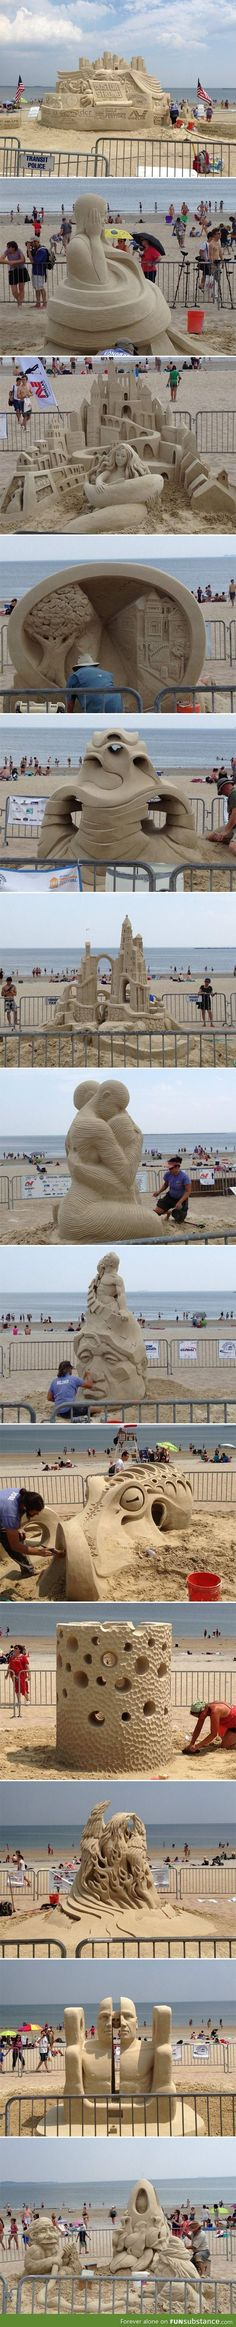 Revere beach sand sculpting festival, the octopus was the winner